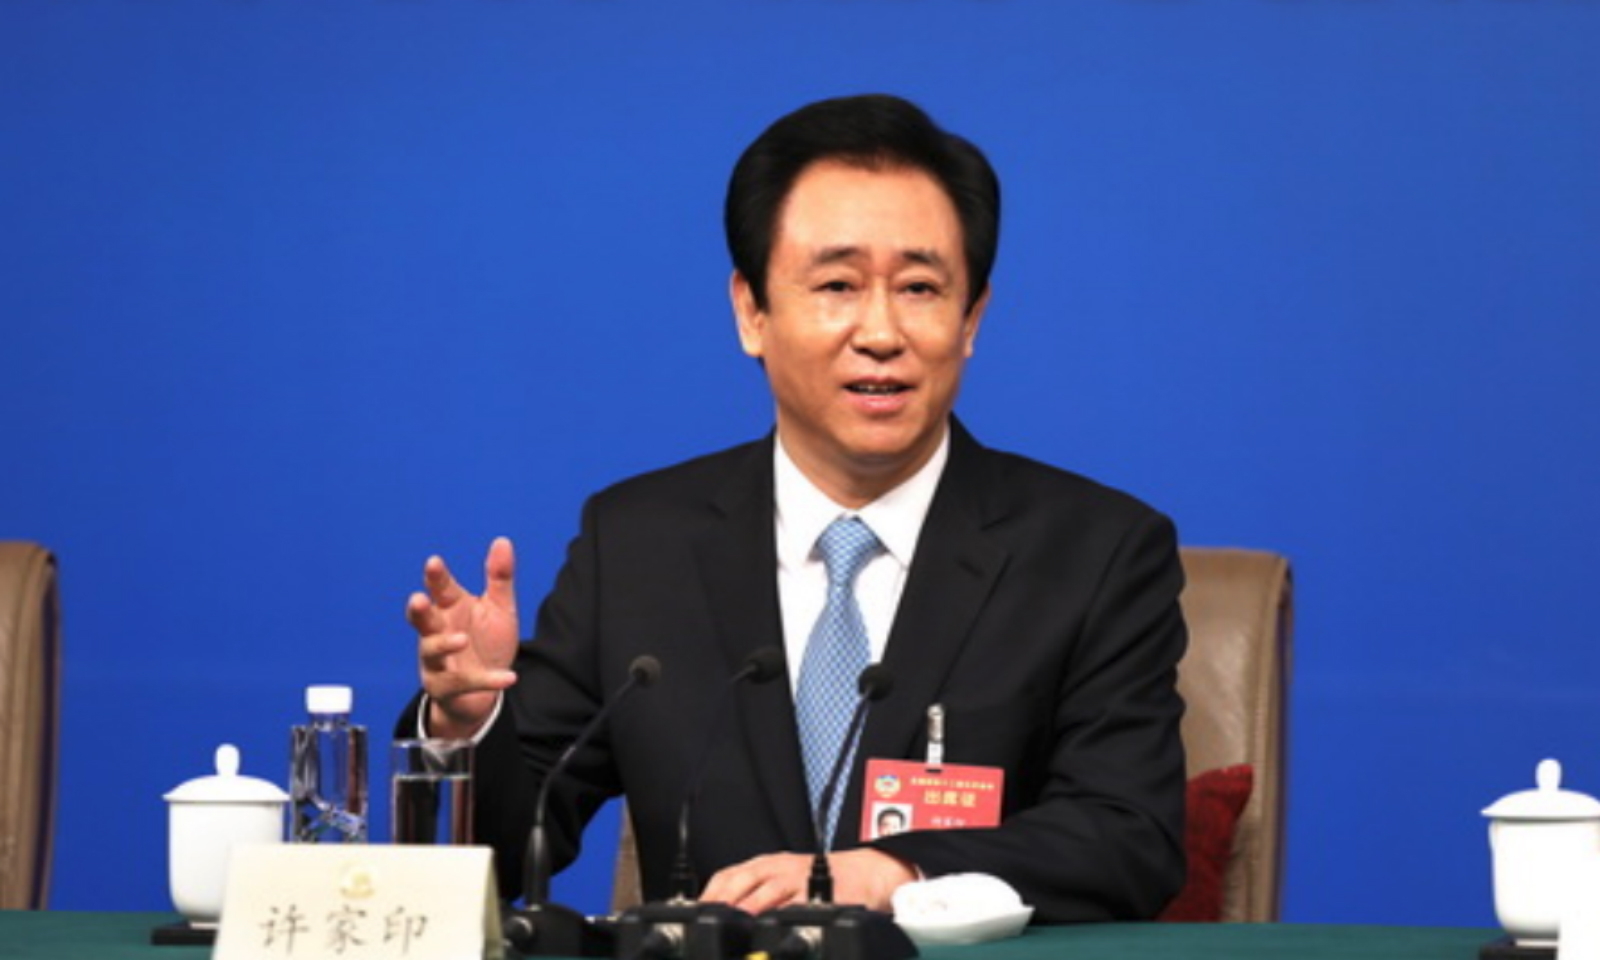 Property tycoon Hui Ka-yan is now China's richest man - Asia Times